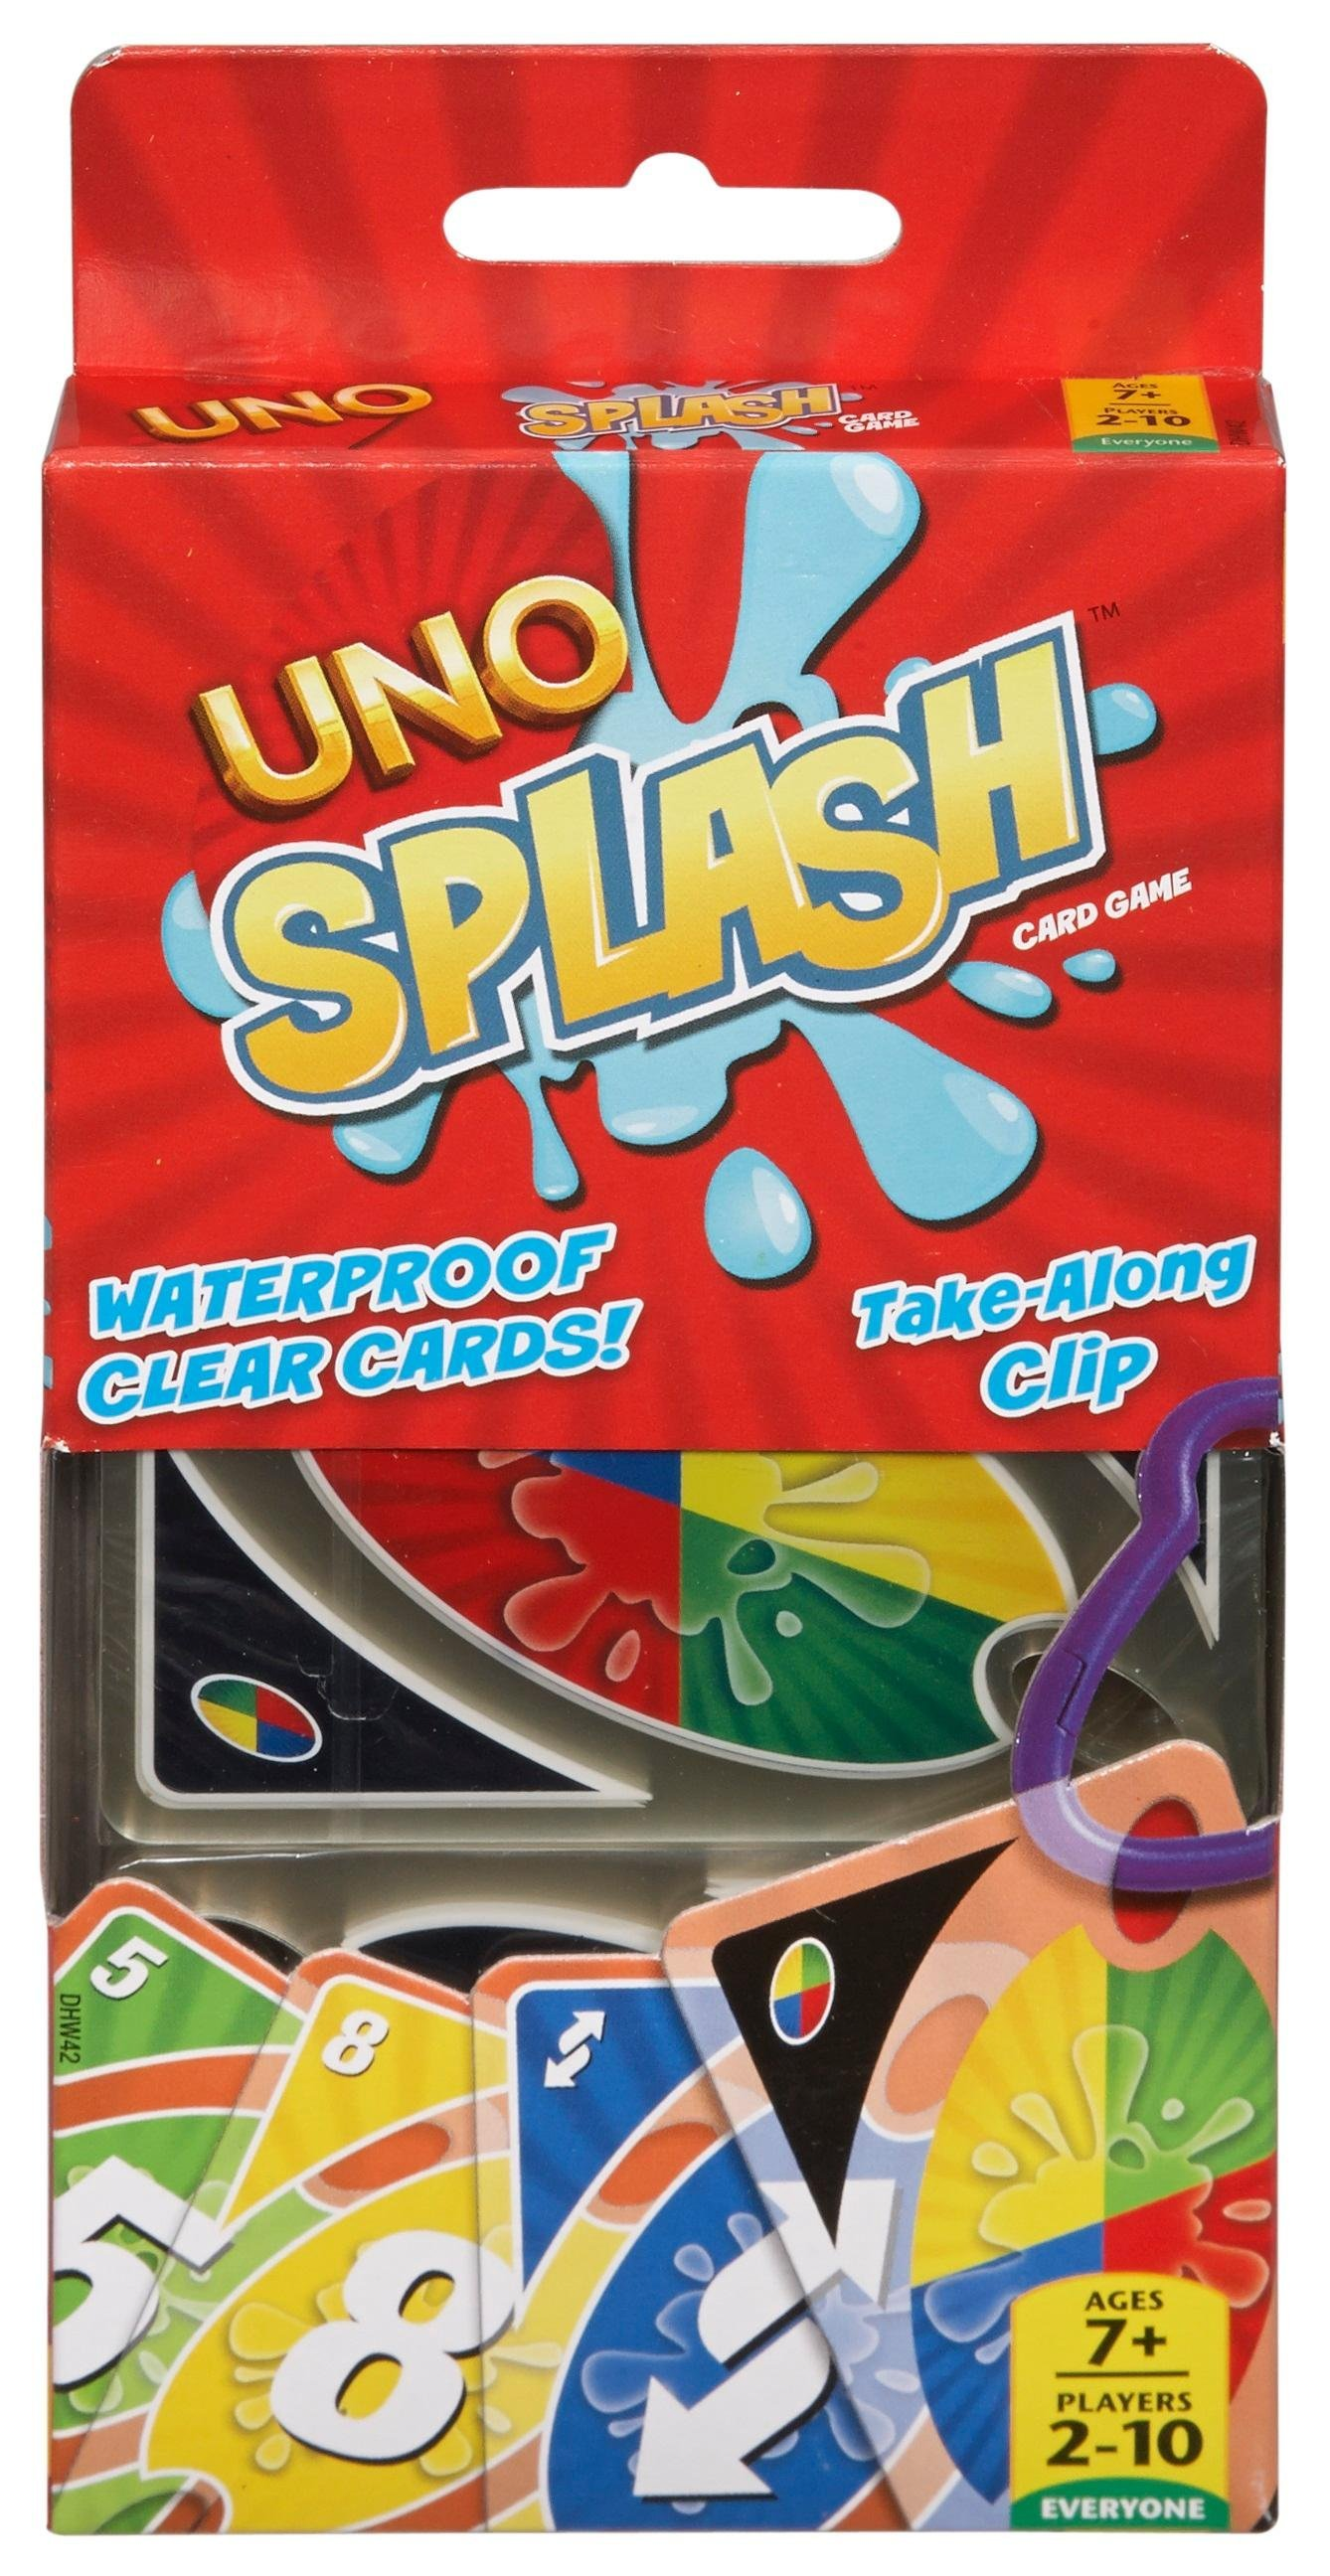 Board Games Toy : Amazon uno card game toys games